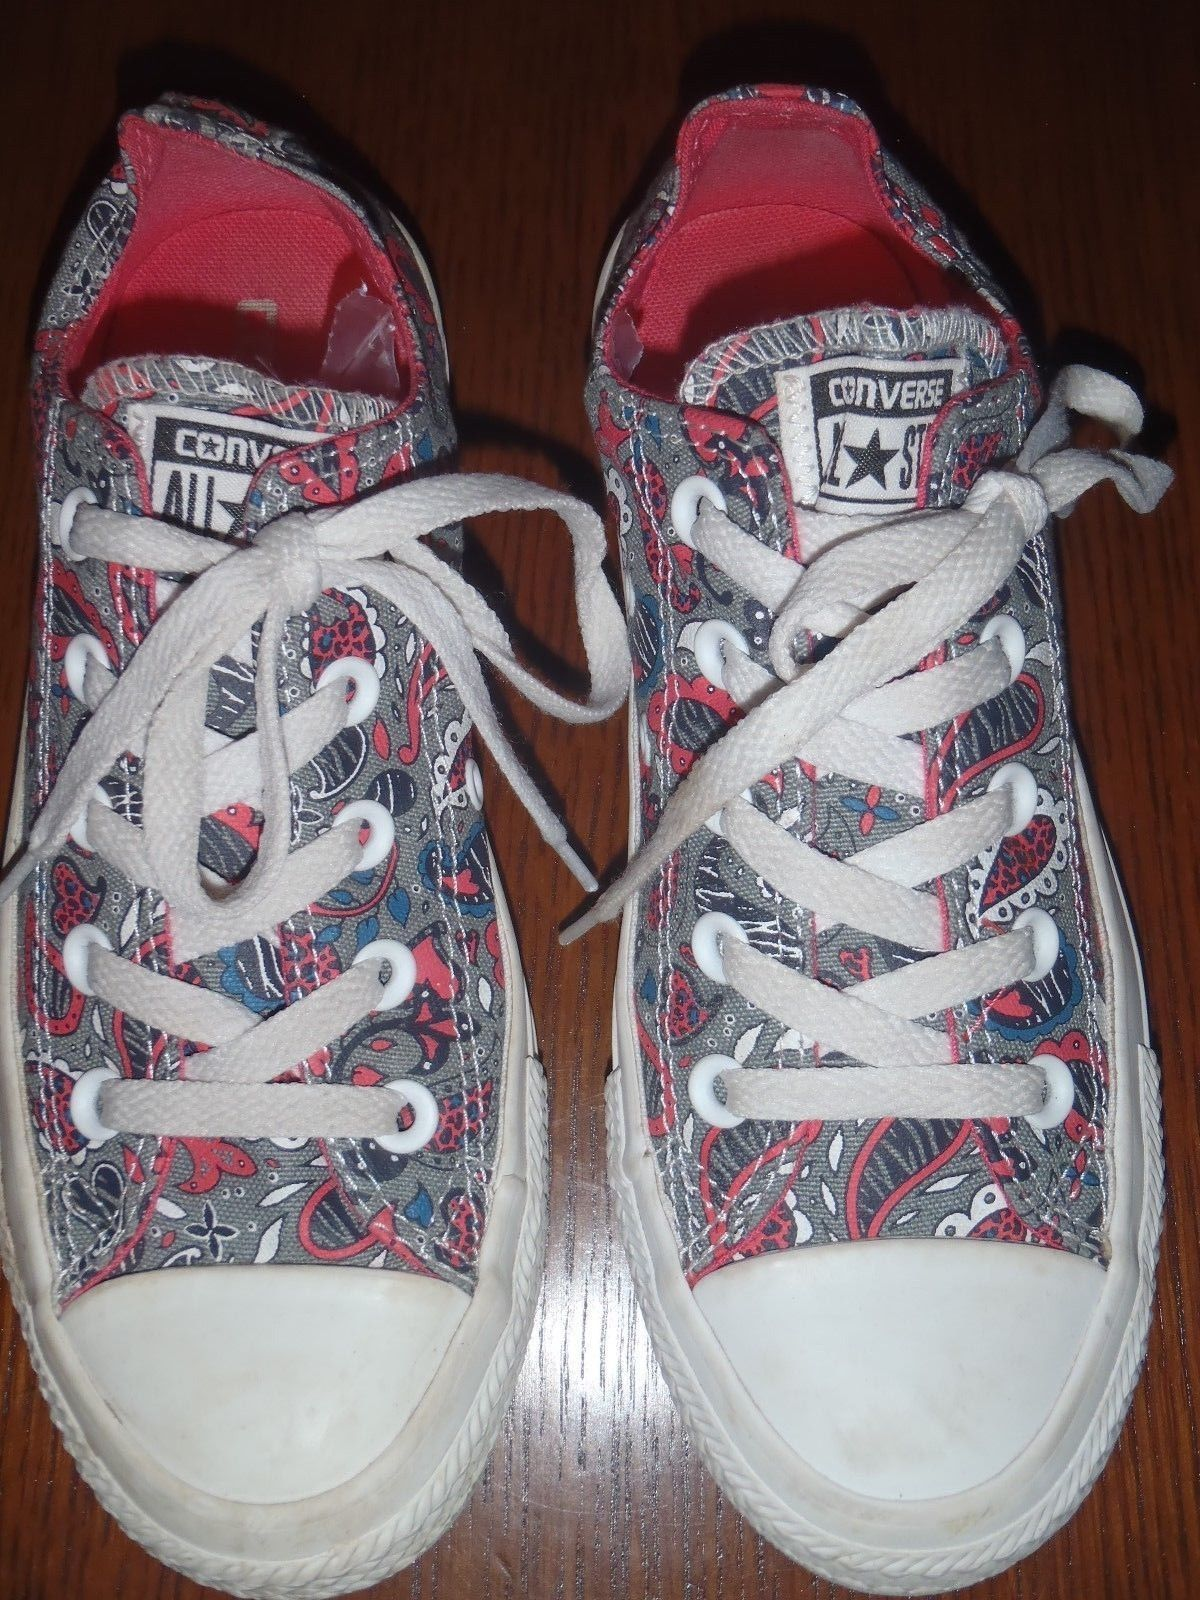 Converse low top pink gray paisley print size 6 W  4 M Sneakers